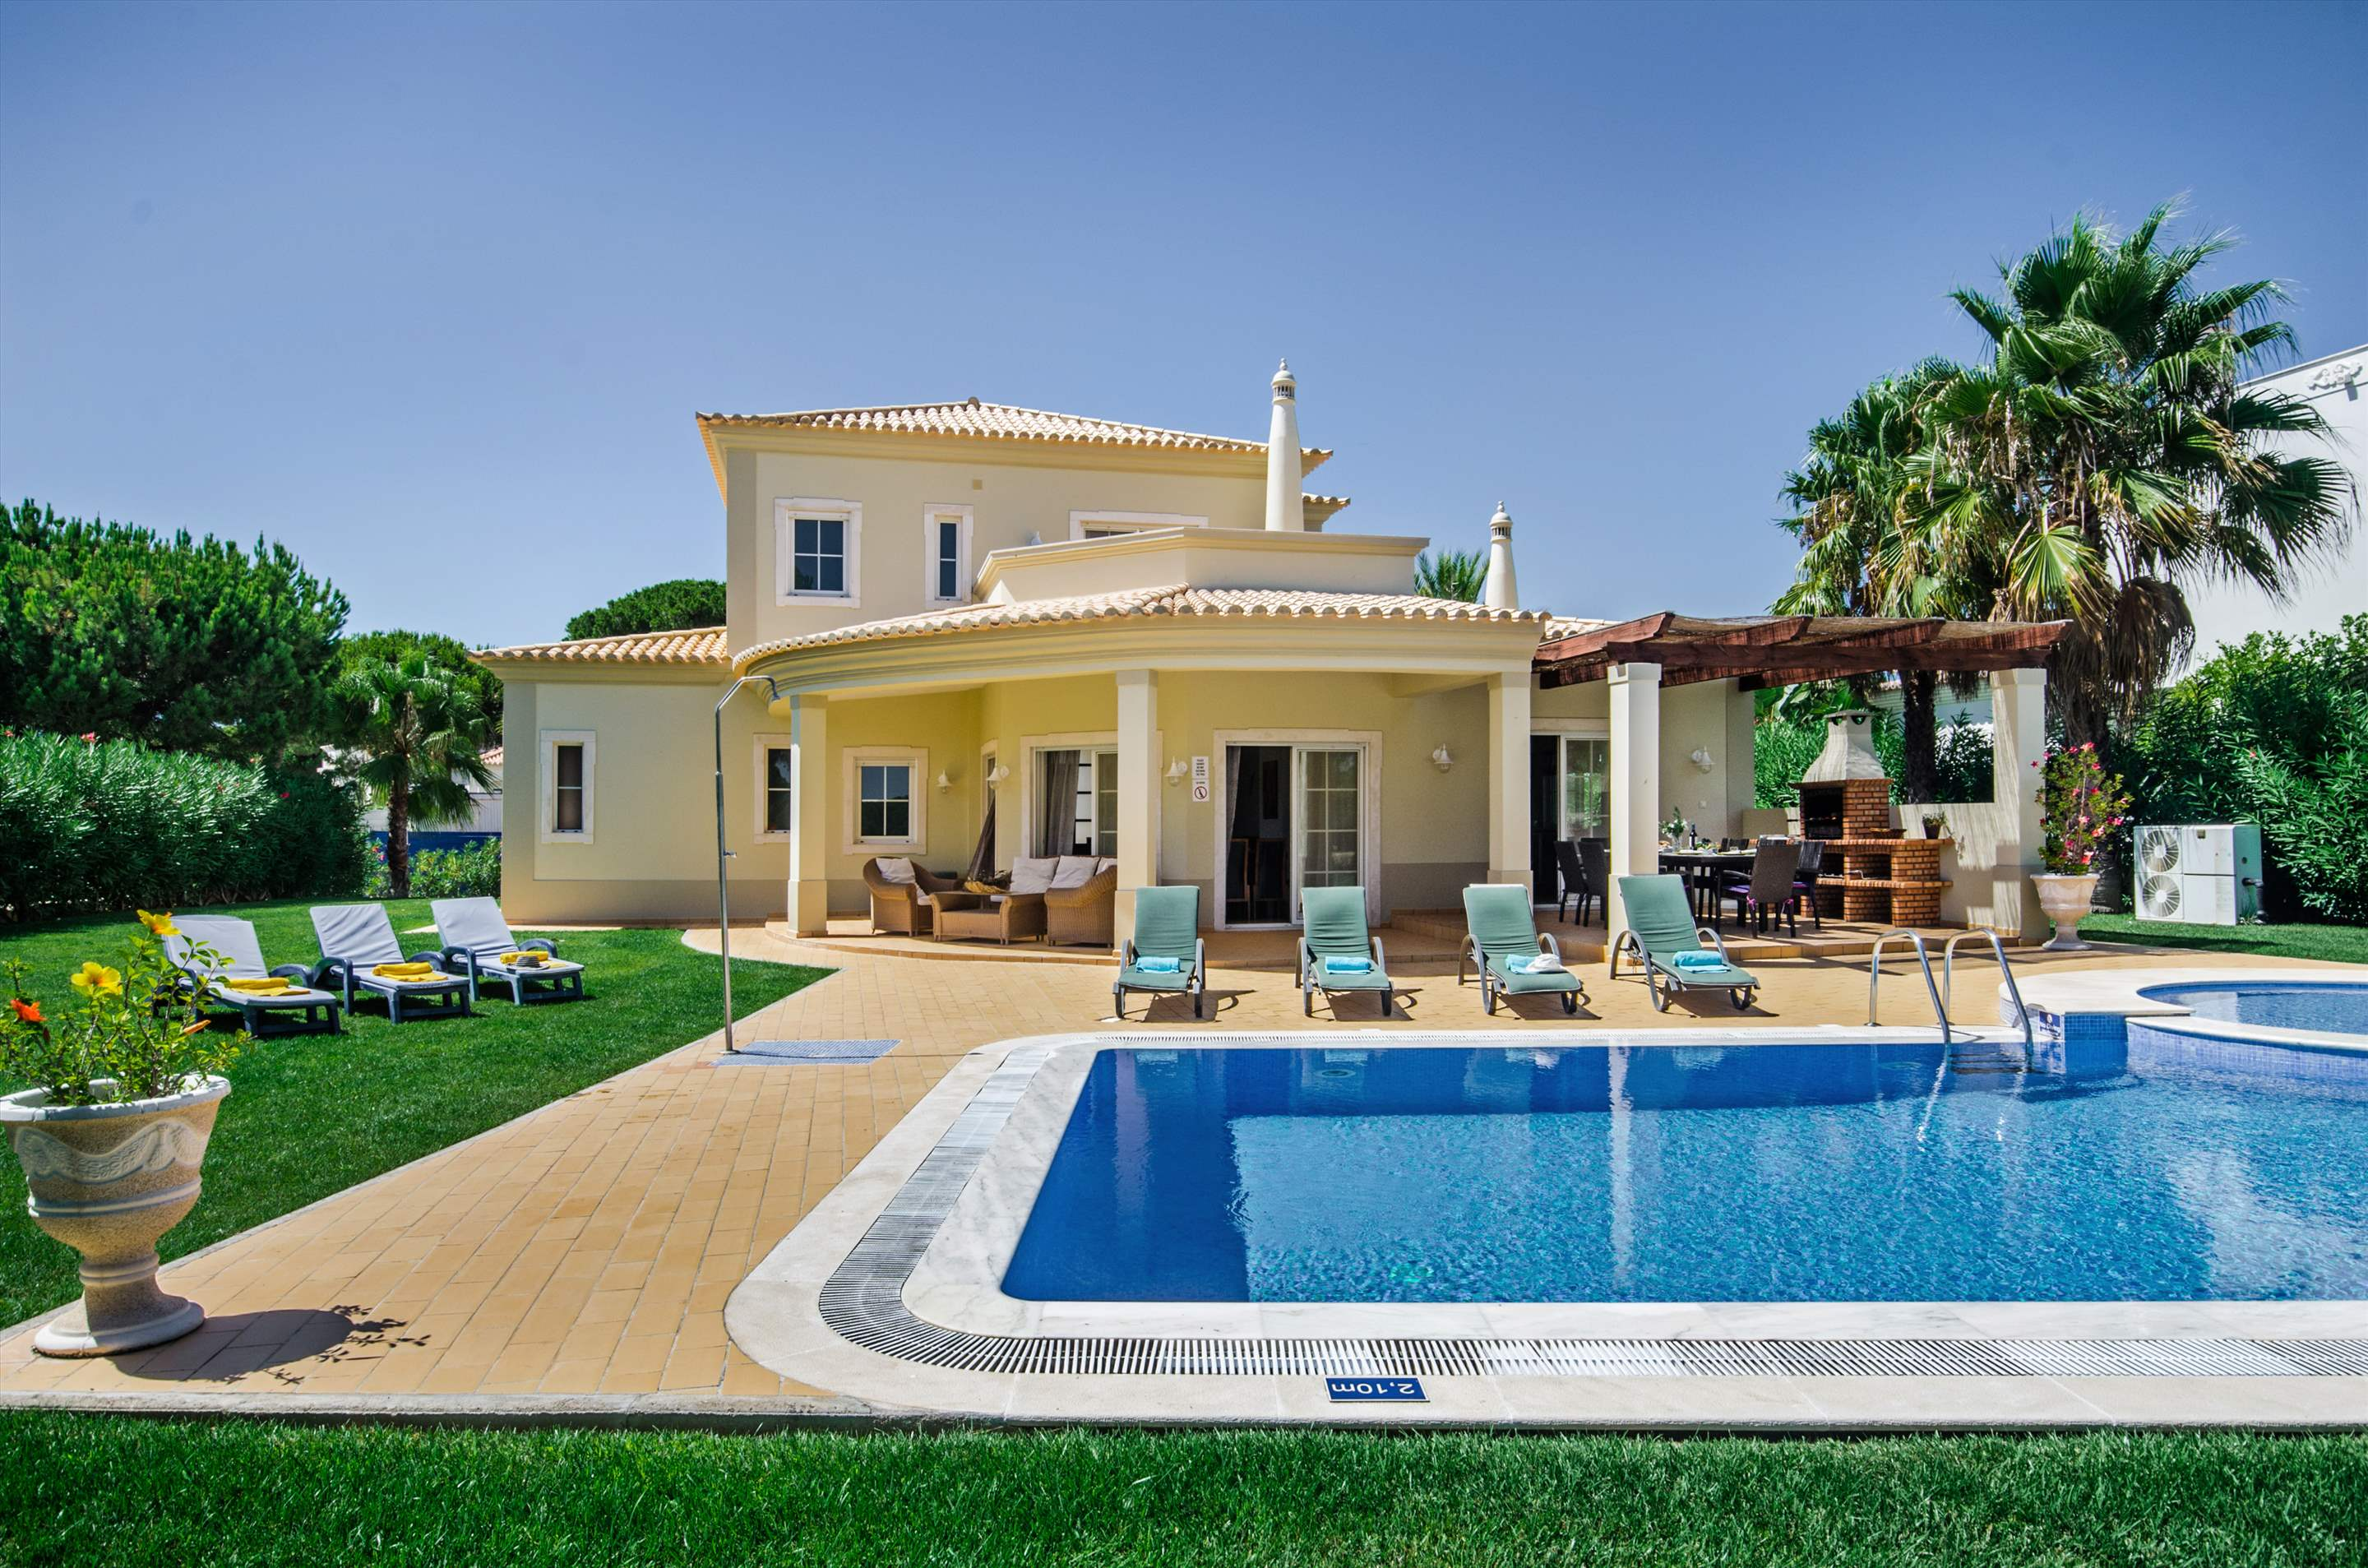 Villa Alexa, 4 bedroom villa in Vilamoura Area, Algarve